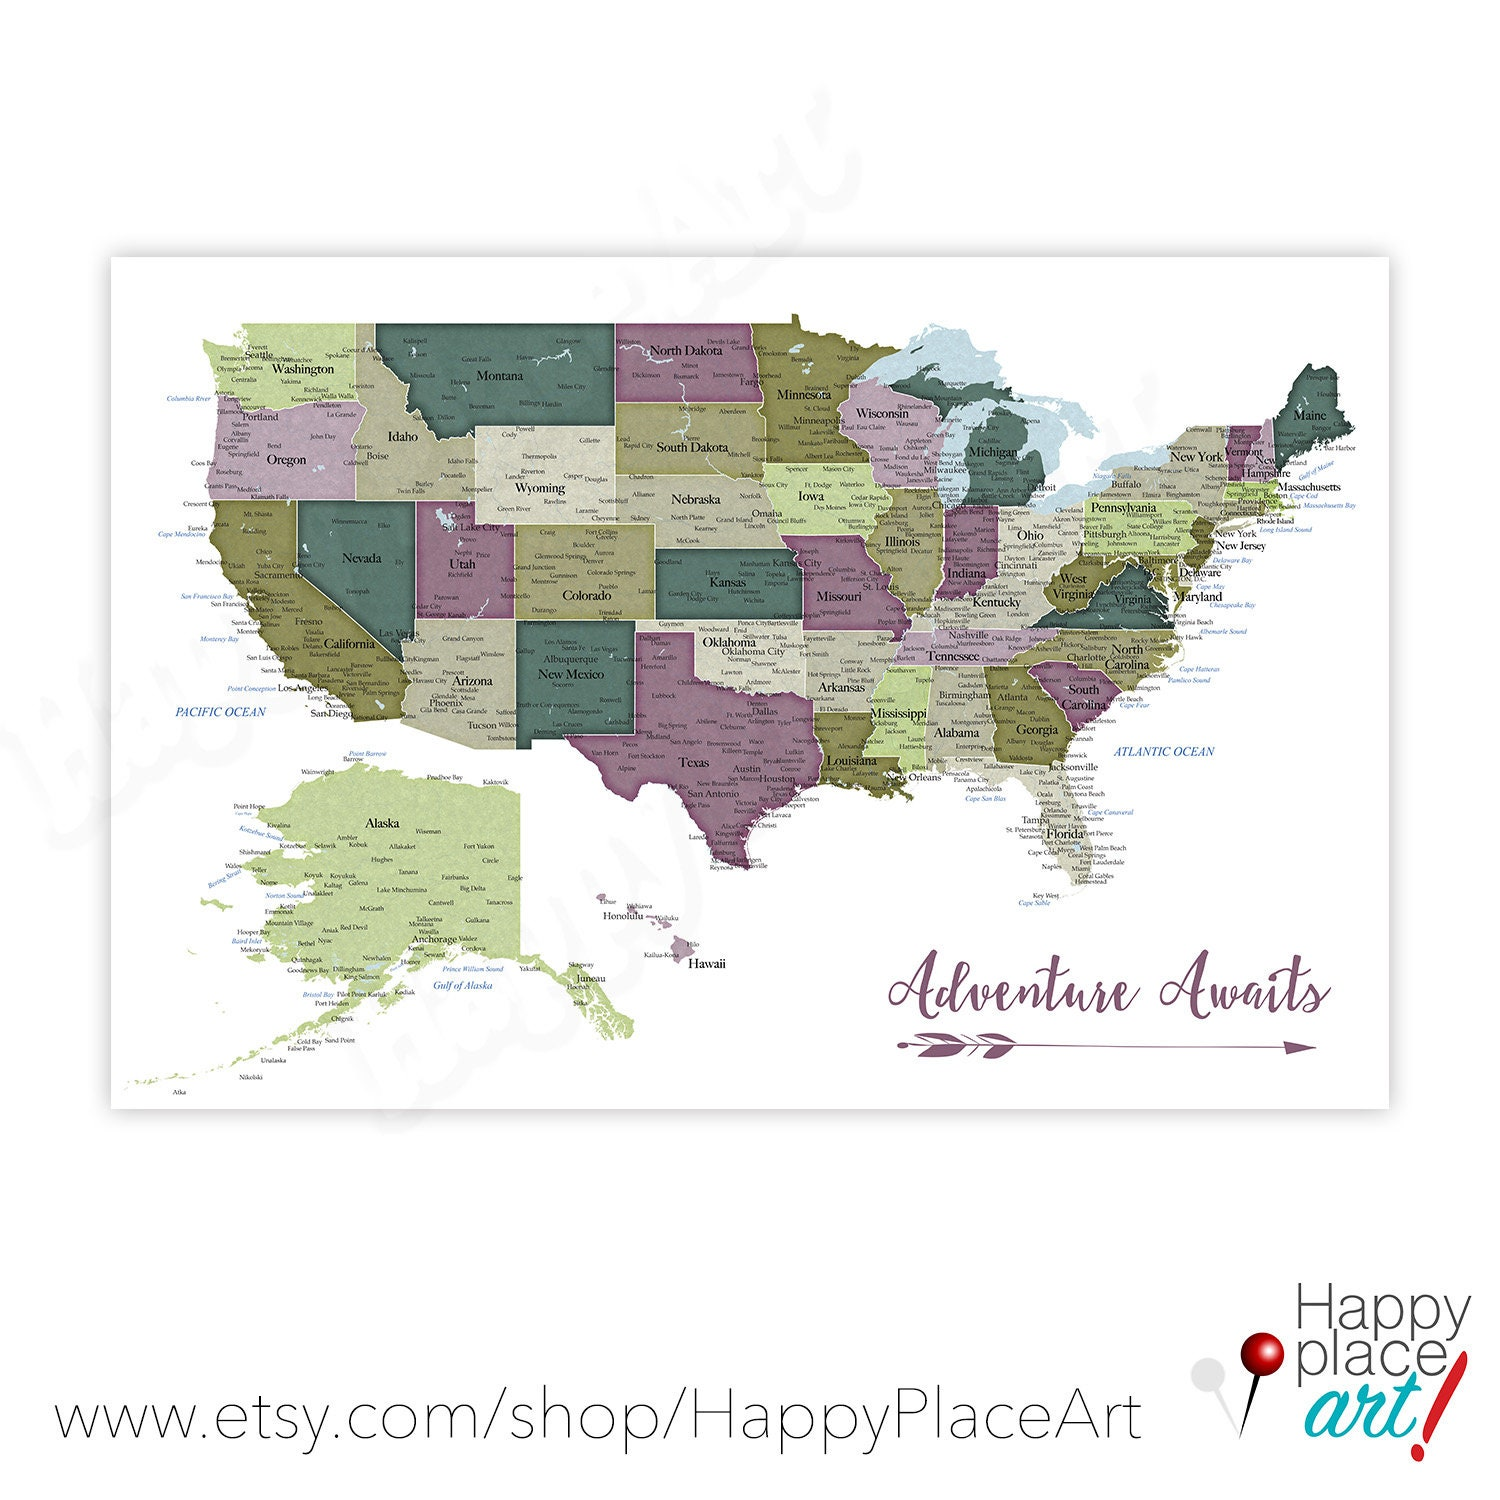 Picture of: Detailed Usa Map With Cities And States Labels Us Map Print With City Names And State Names Added Neutral Colors Push Pin Map Idea